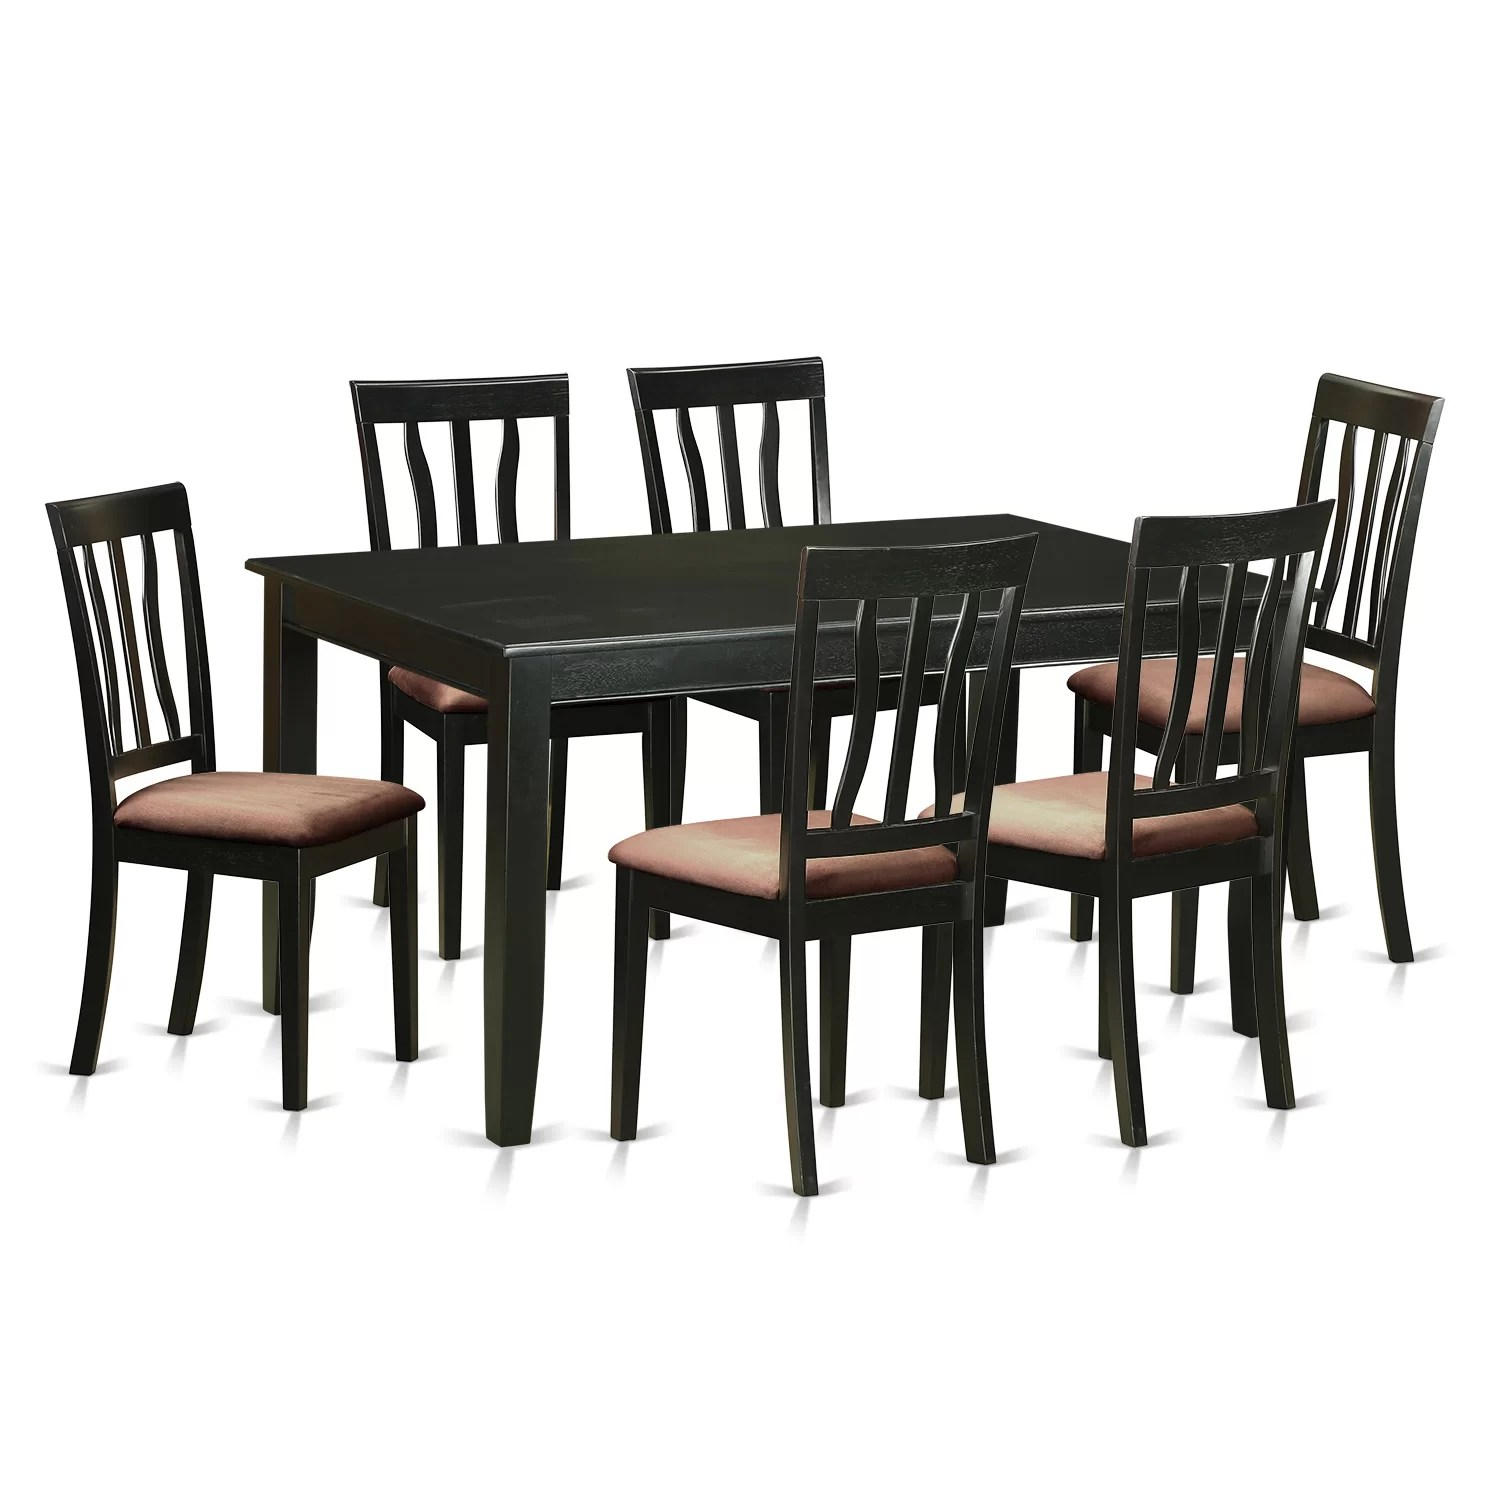 6 Dining Room Chairs Wooden Importers Dudley 7 Piece Dining Set Wayfair